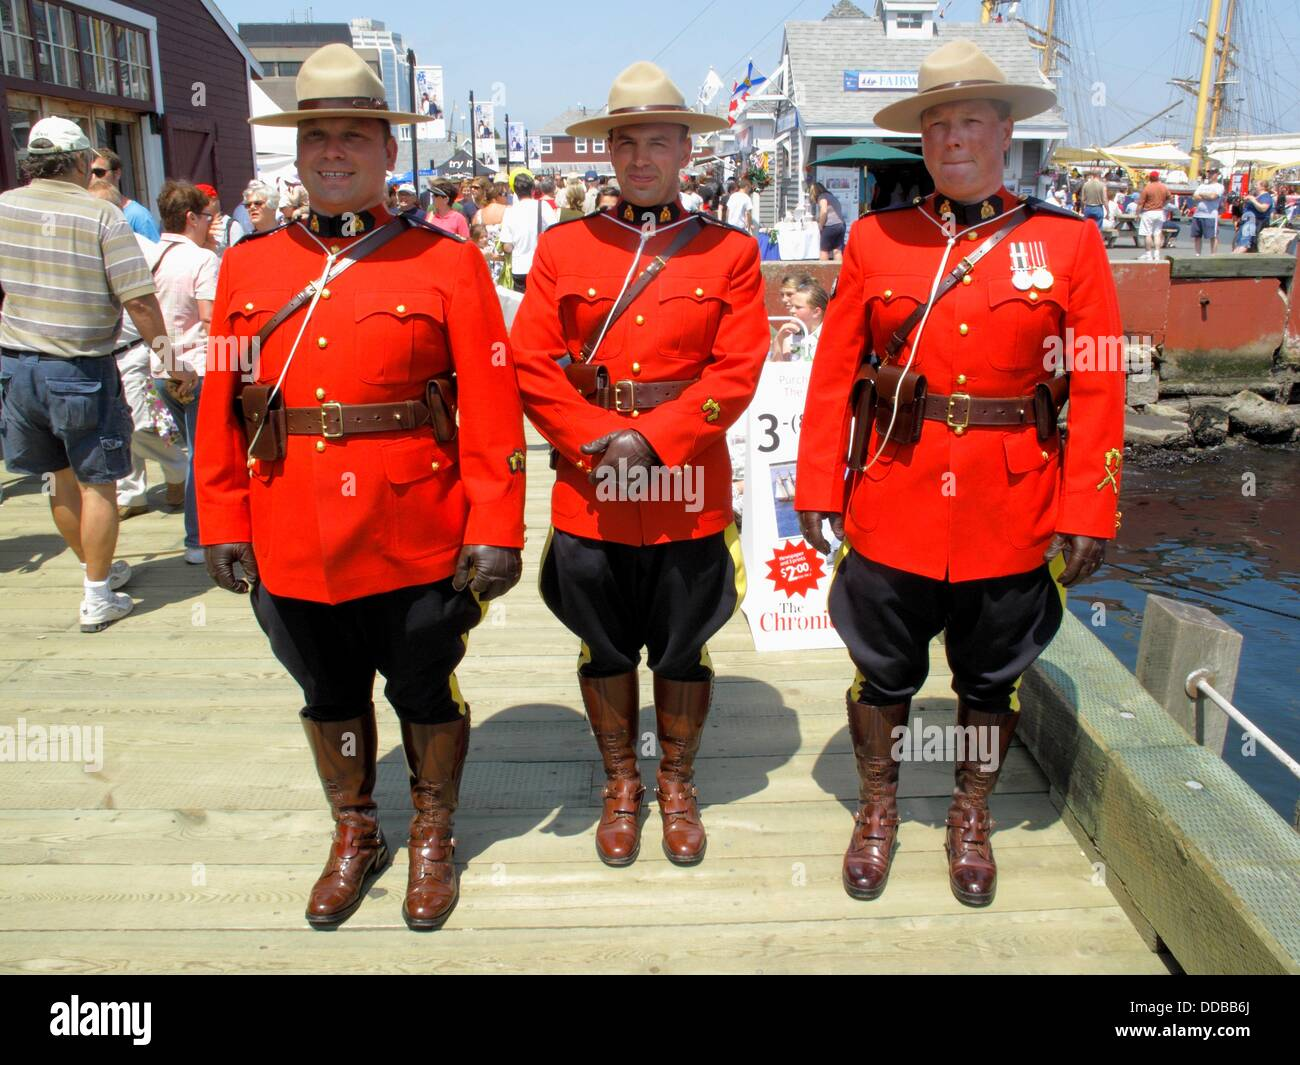 Three Royal Canadian Mounted Police Officers In Red